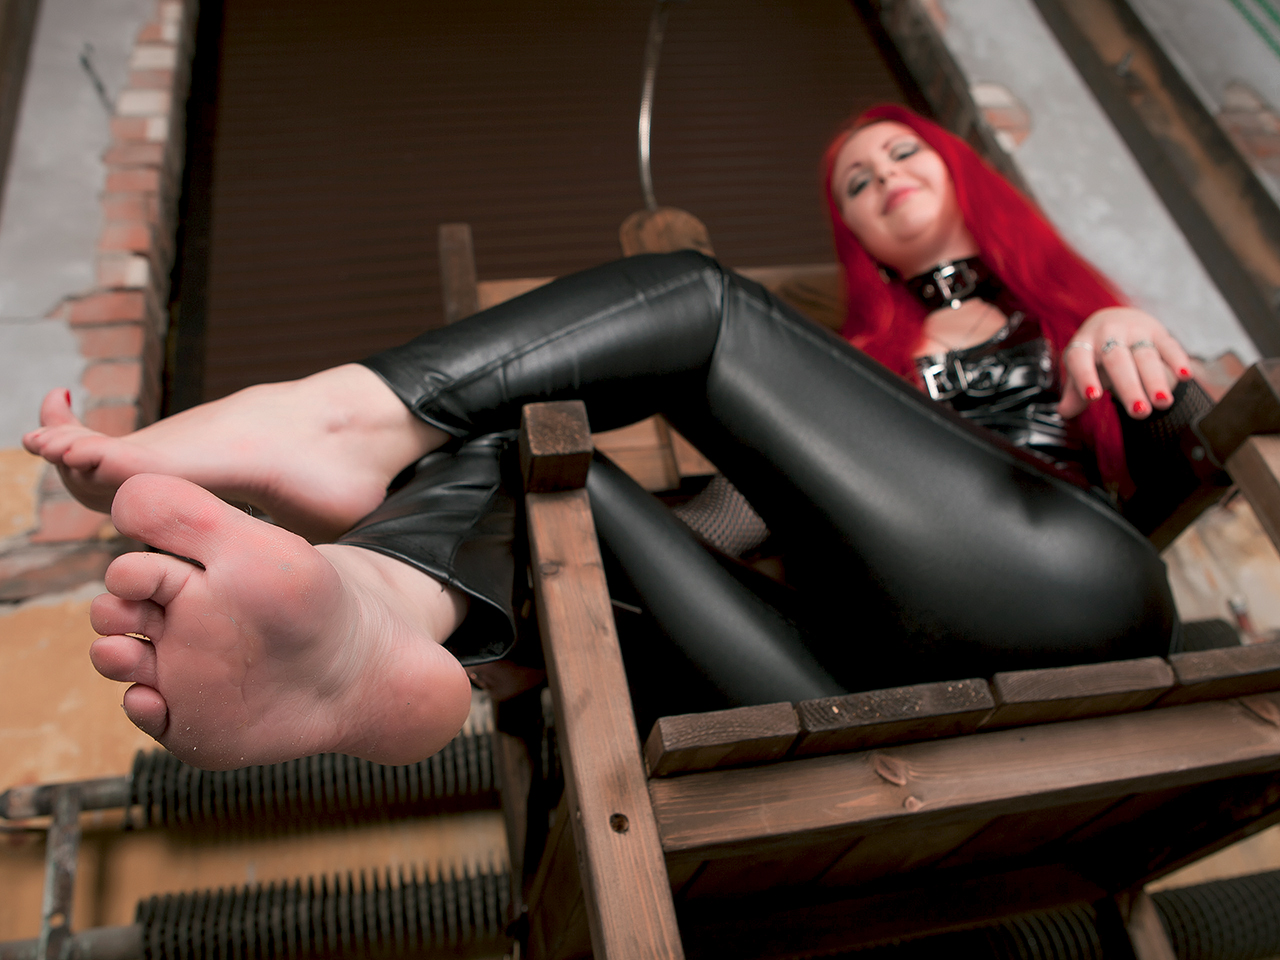 dom Foot fetish